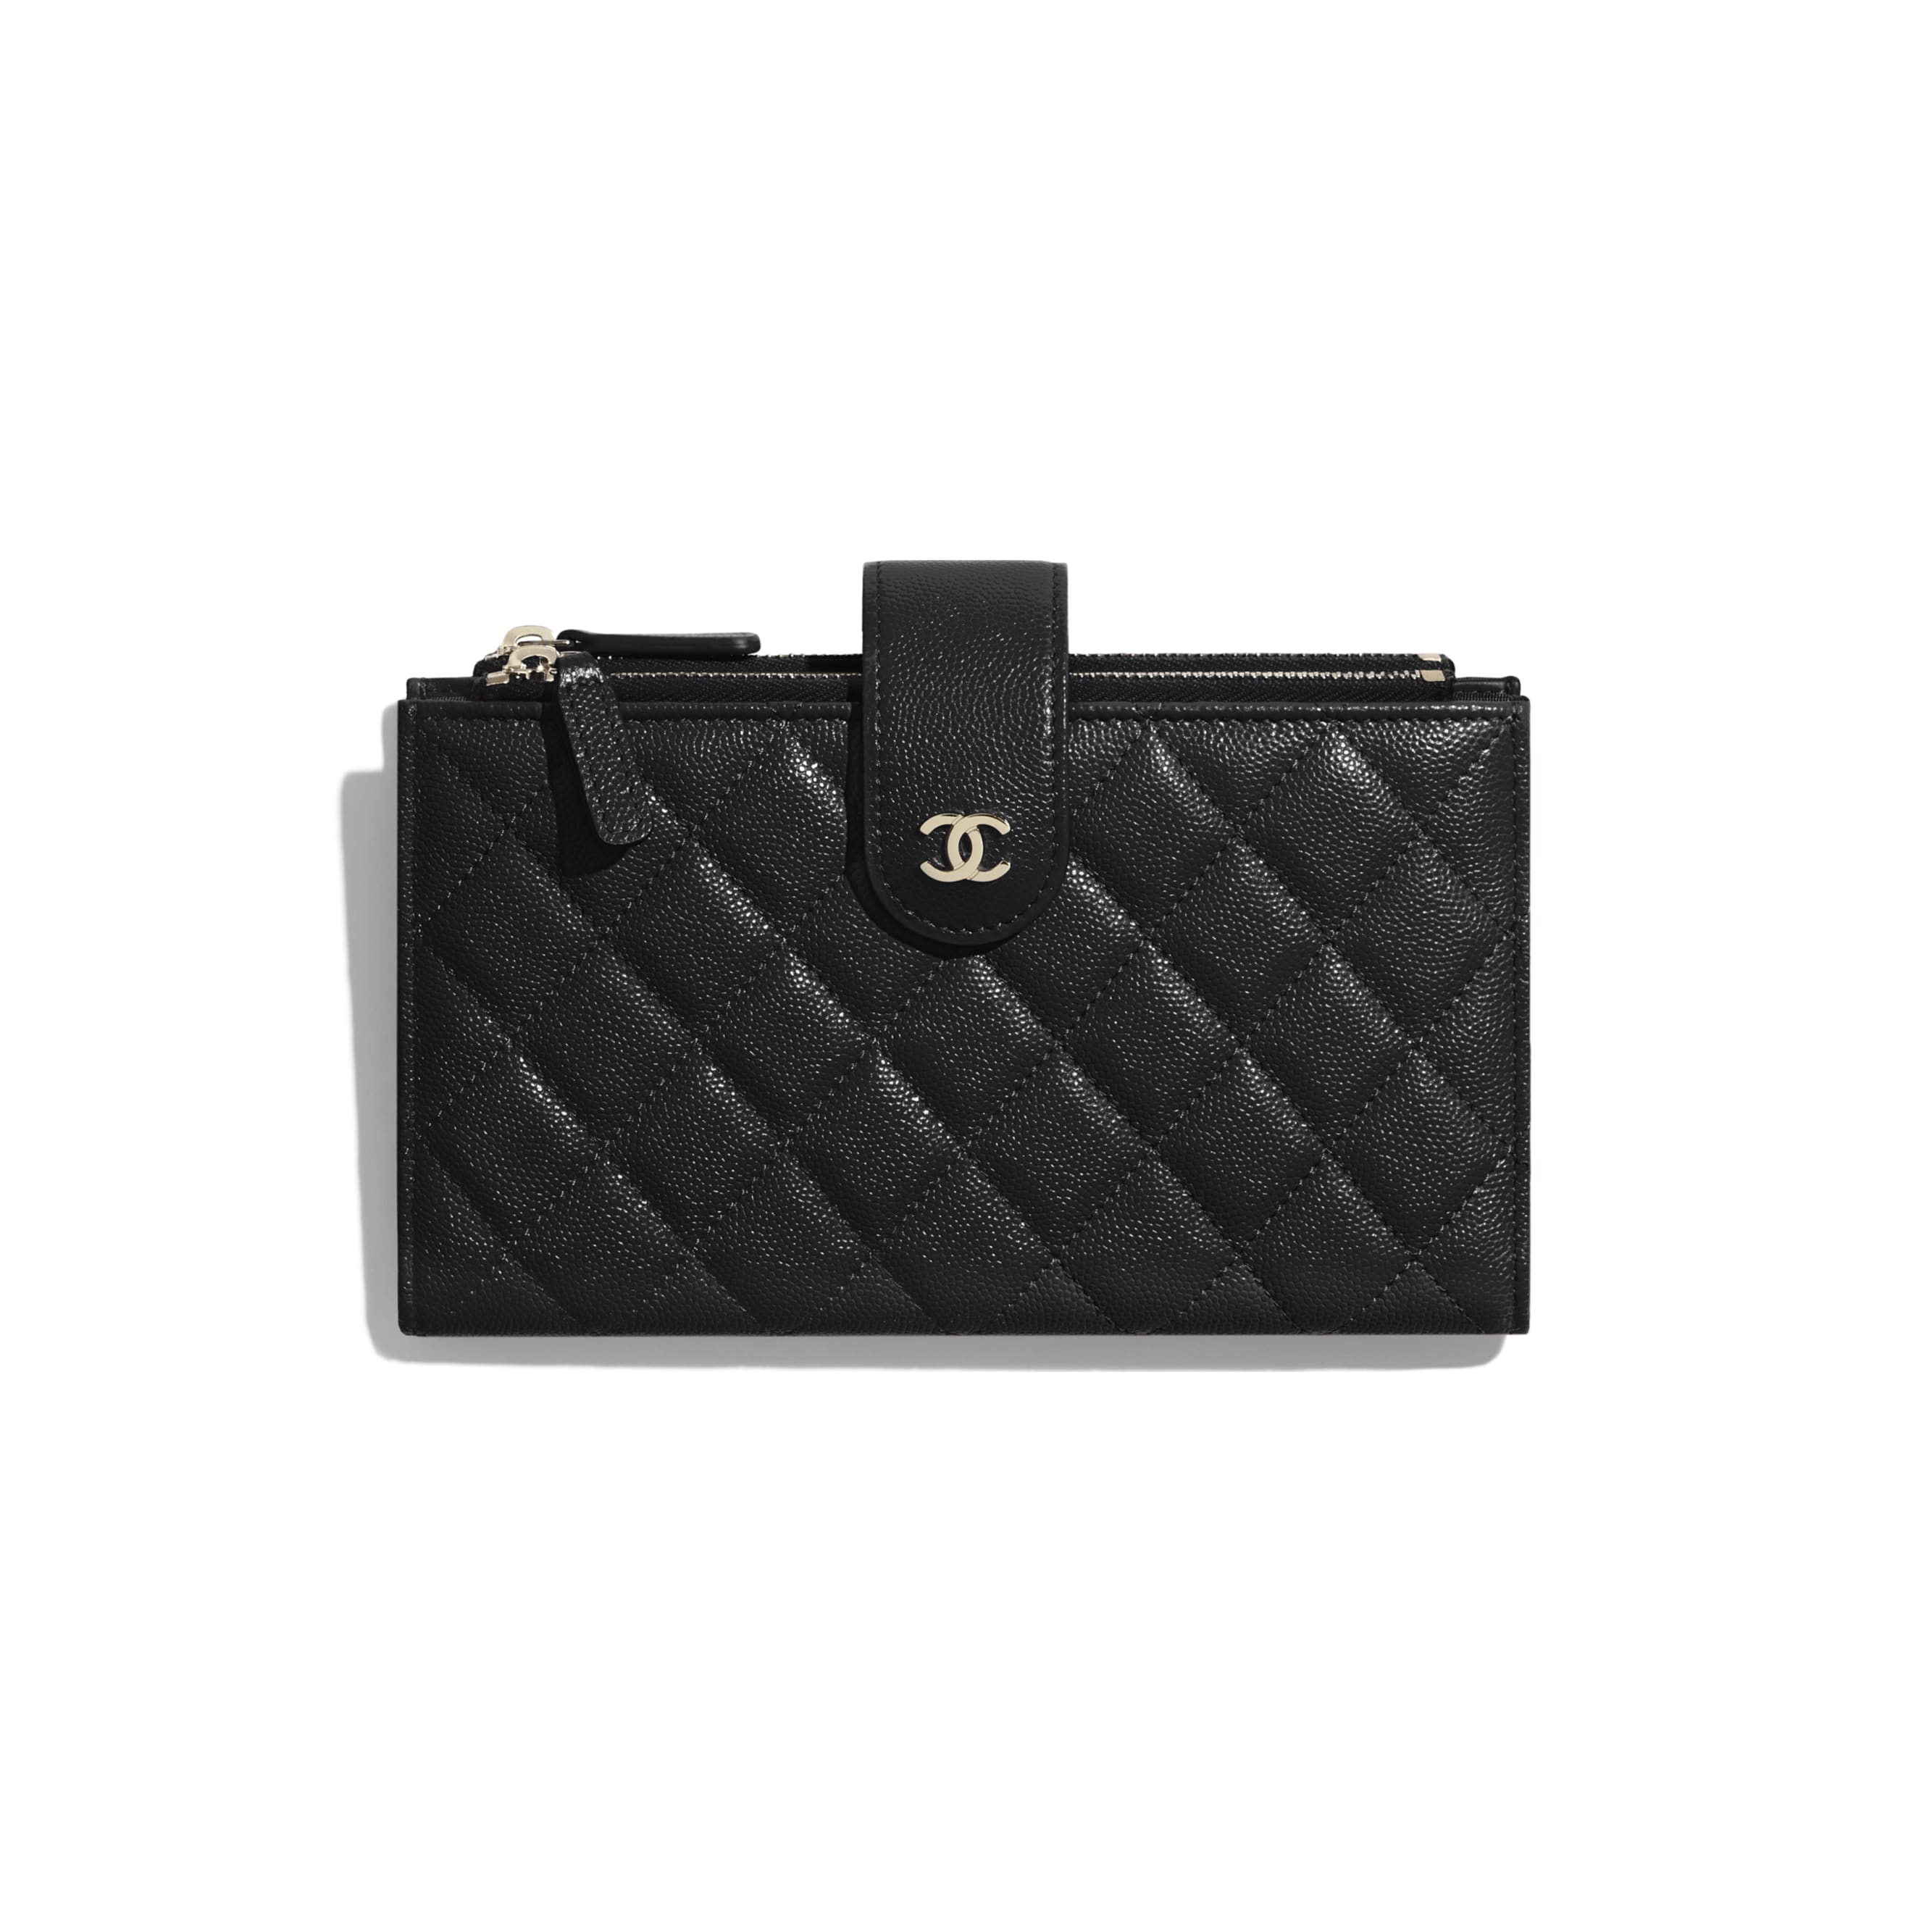 Classic Long Zipped Wallet - Black - Grained Calfskin & Gold-Tone Metal - CHANEL - Default view - see standard sized version